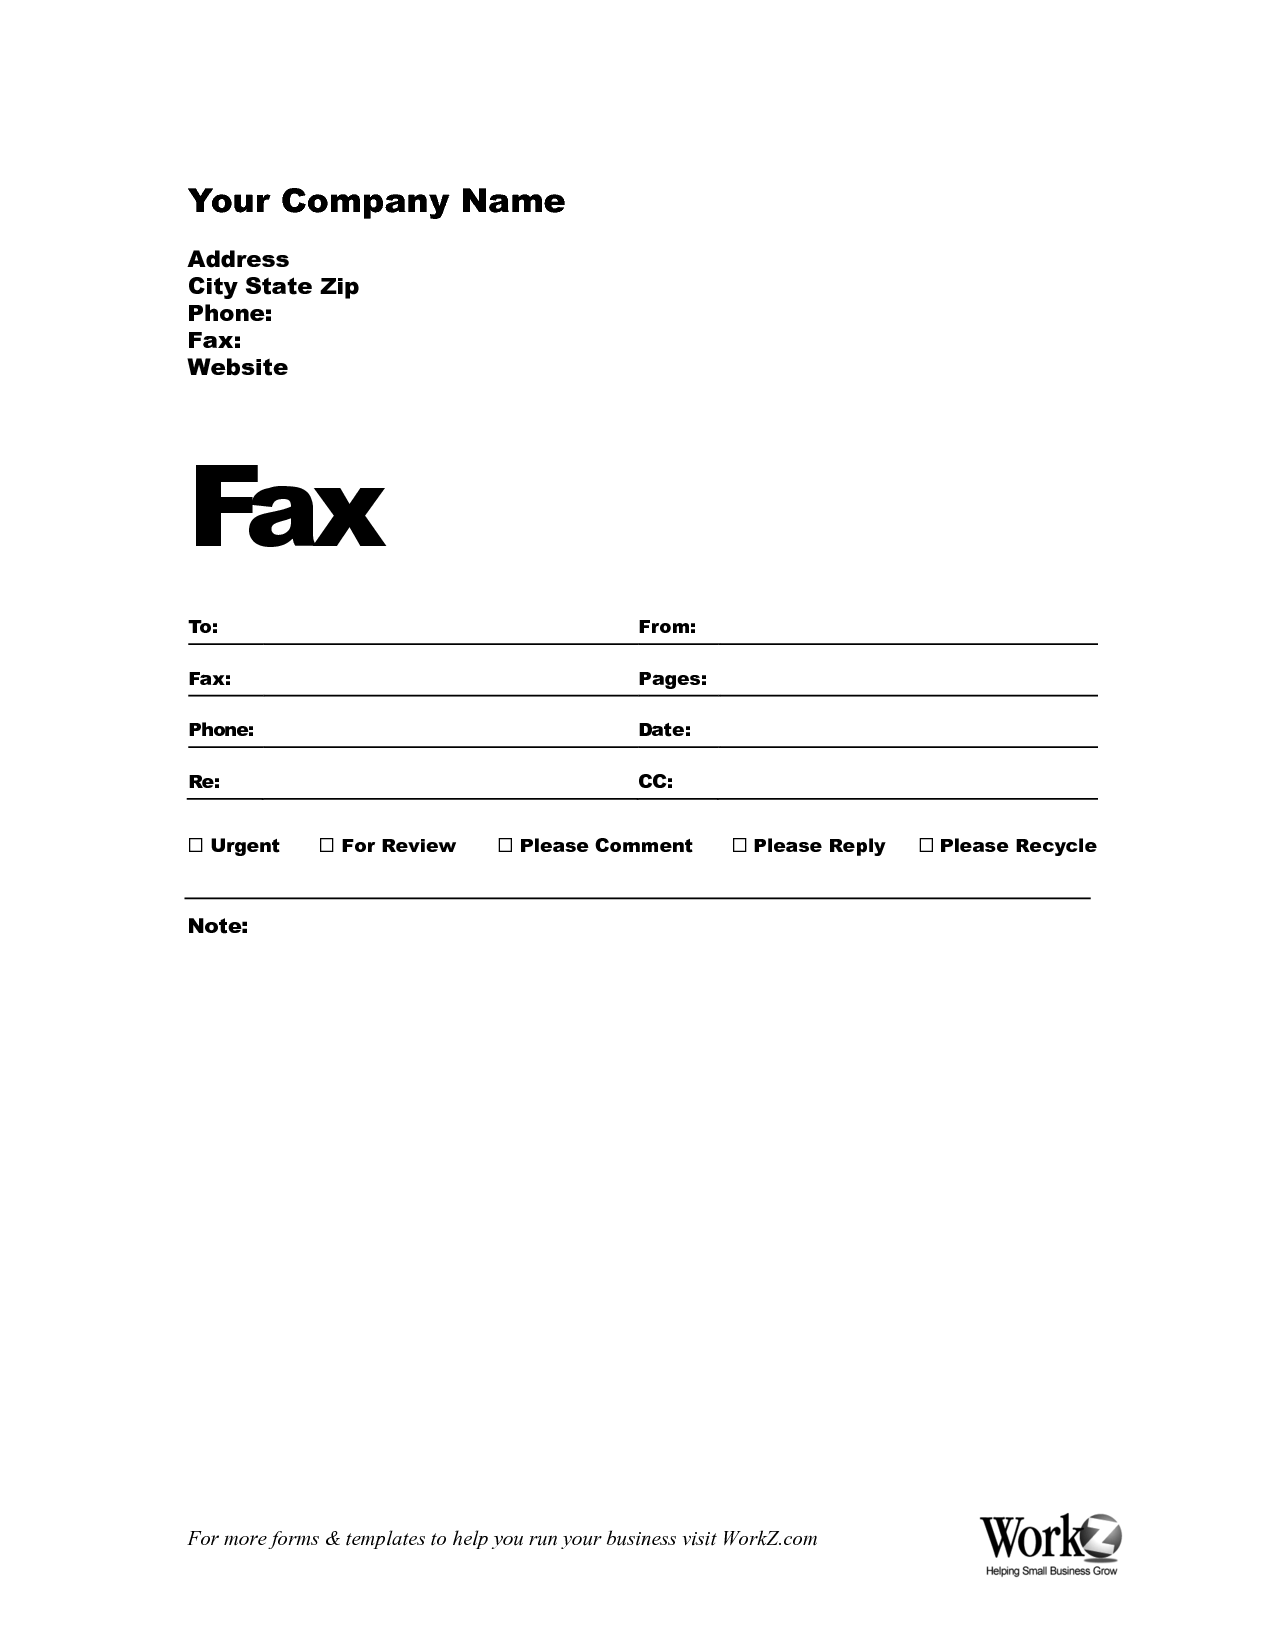 [ Fax Word Template Professional Cover Sheet Free Pdf Letter Resume ]    Best Free Home Design Idea U0026 Inspiration  Ms Word Fax Template